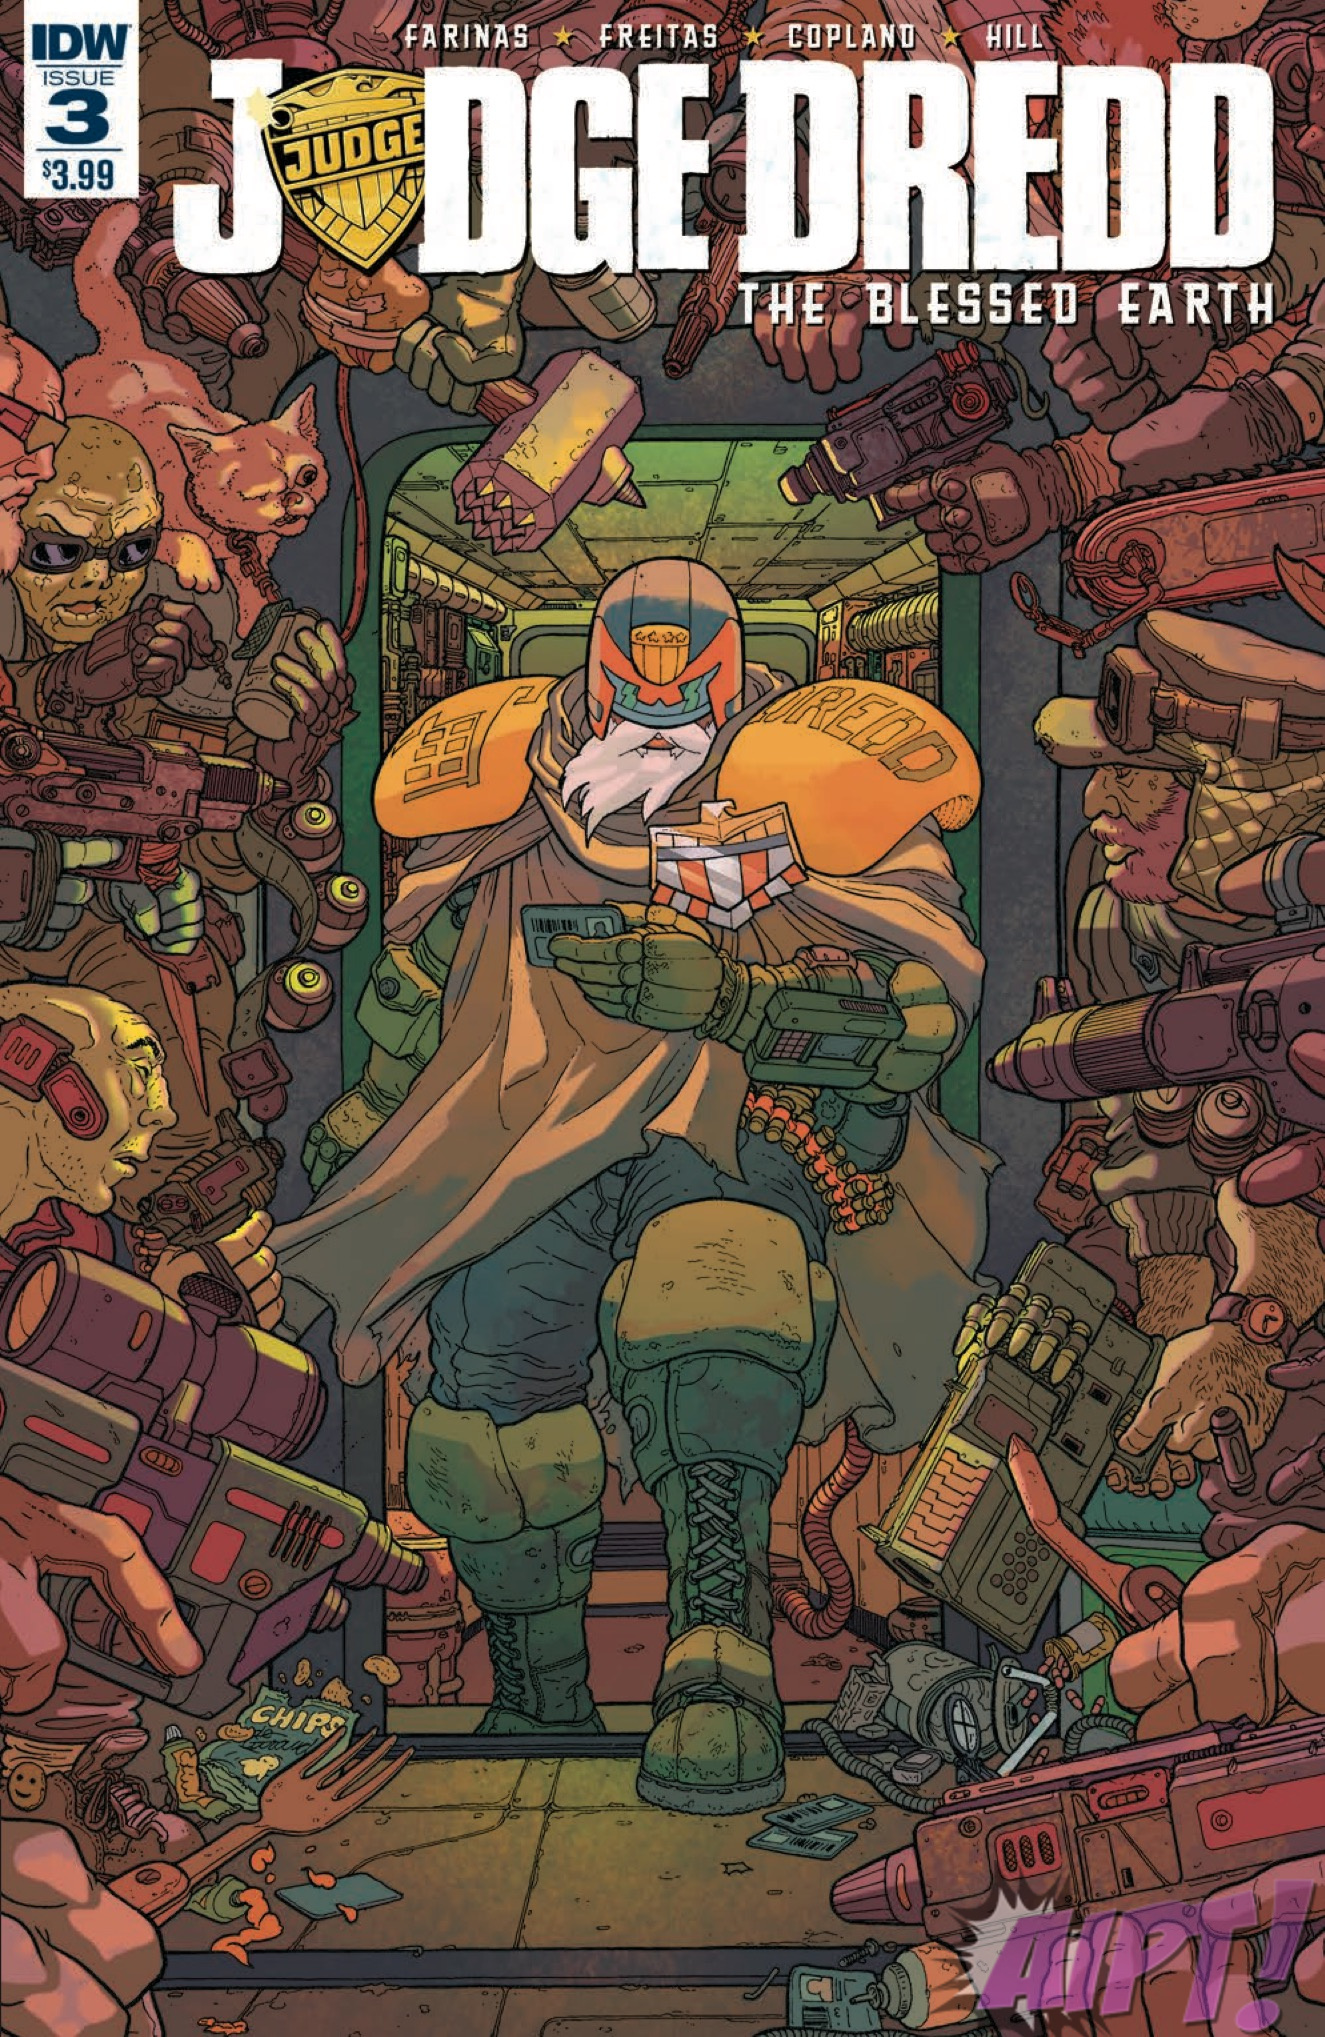 [EXCLUSIVE] IDW Preview: Judge Dredd: Blessed Earth #3